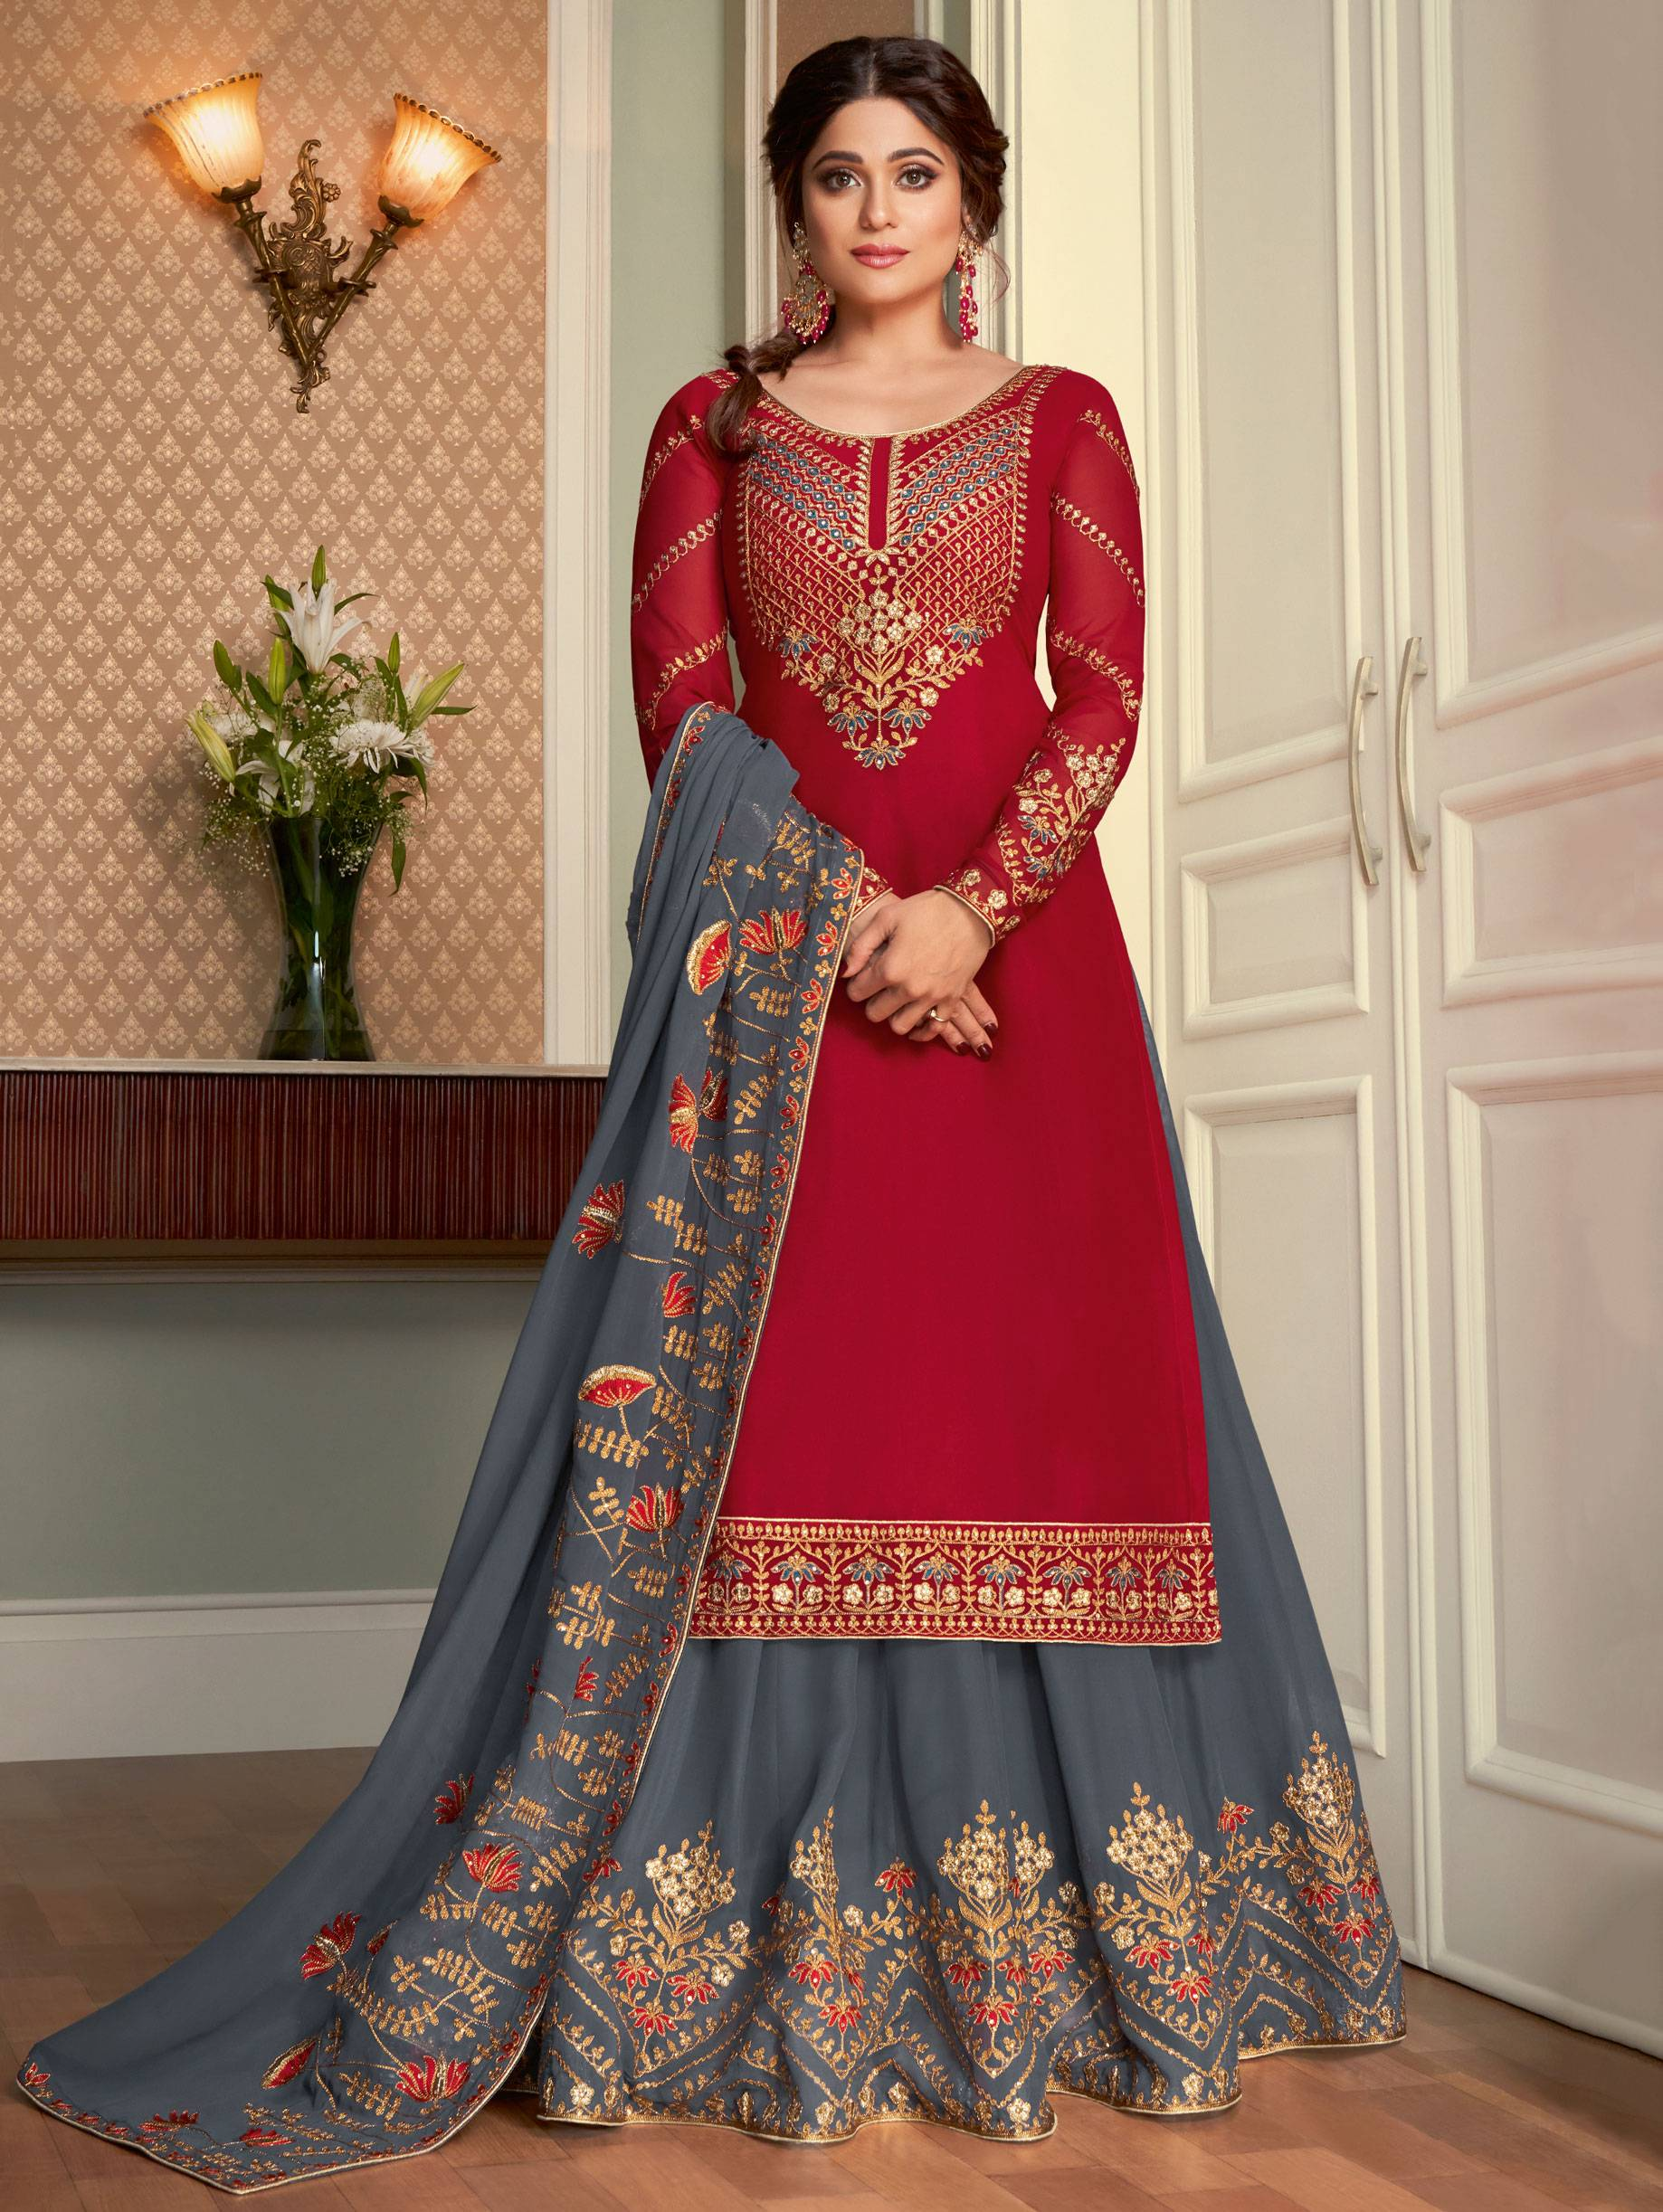 Party Wear Red and Grey Lehenga Kurti Design Images